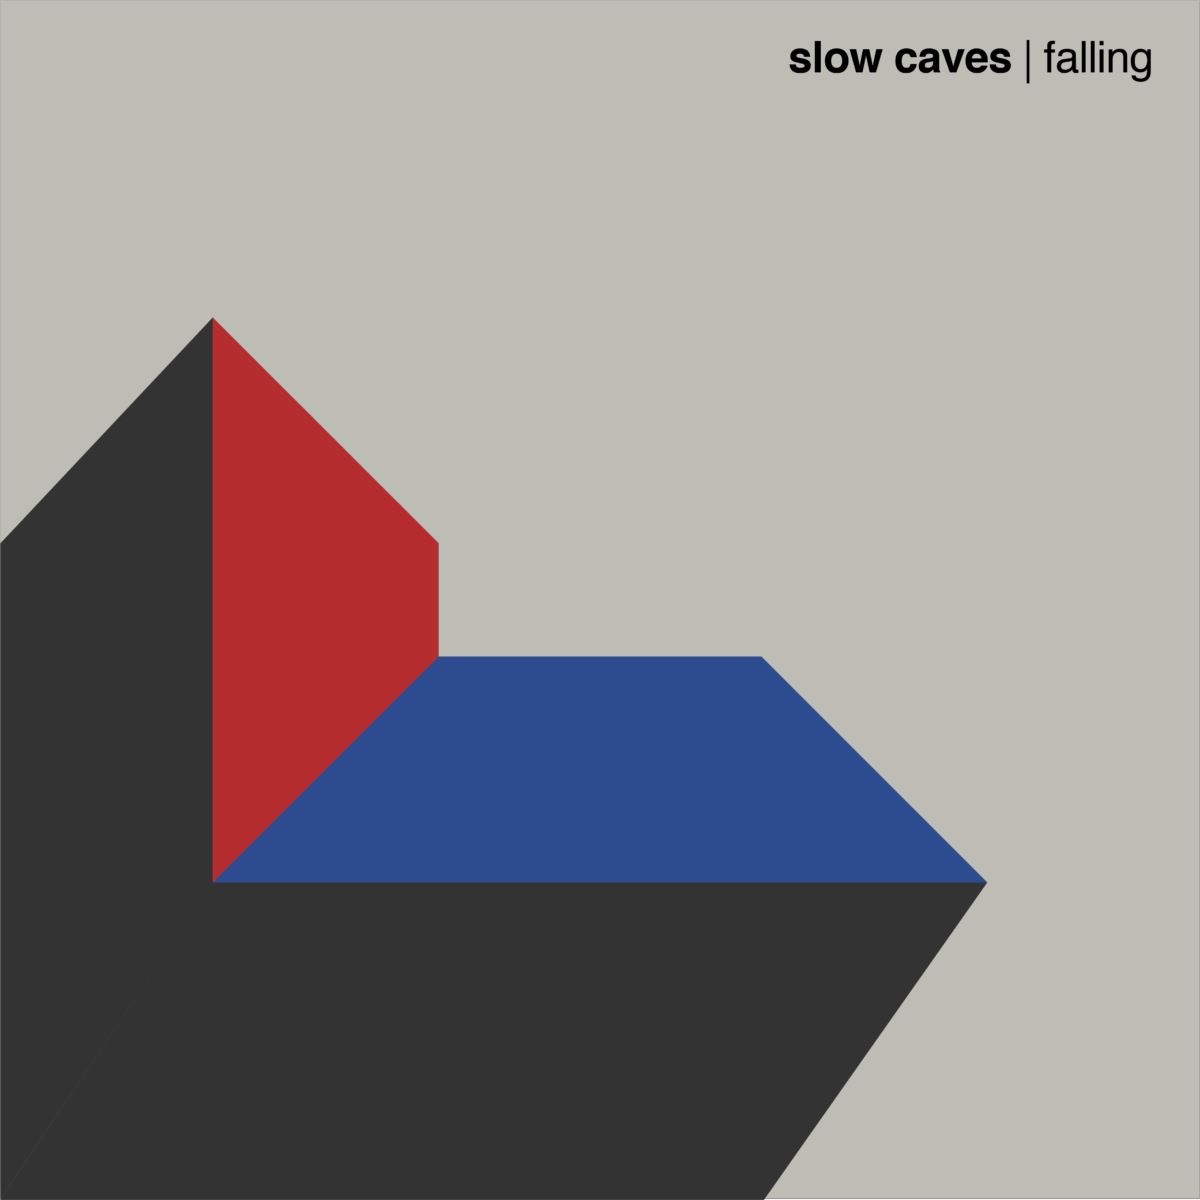 slow caves falling